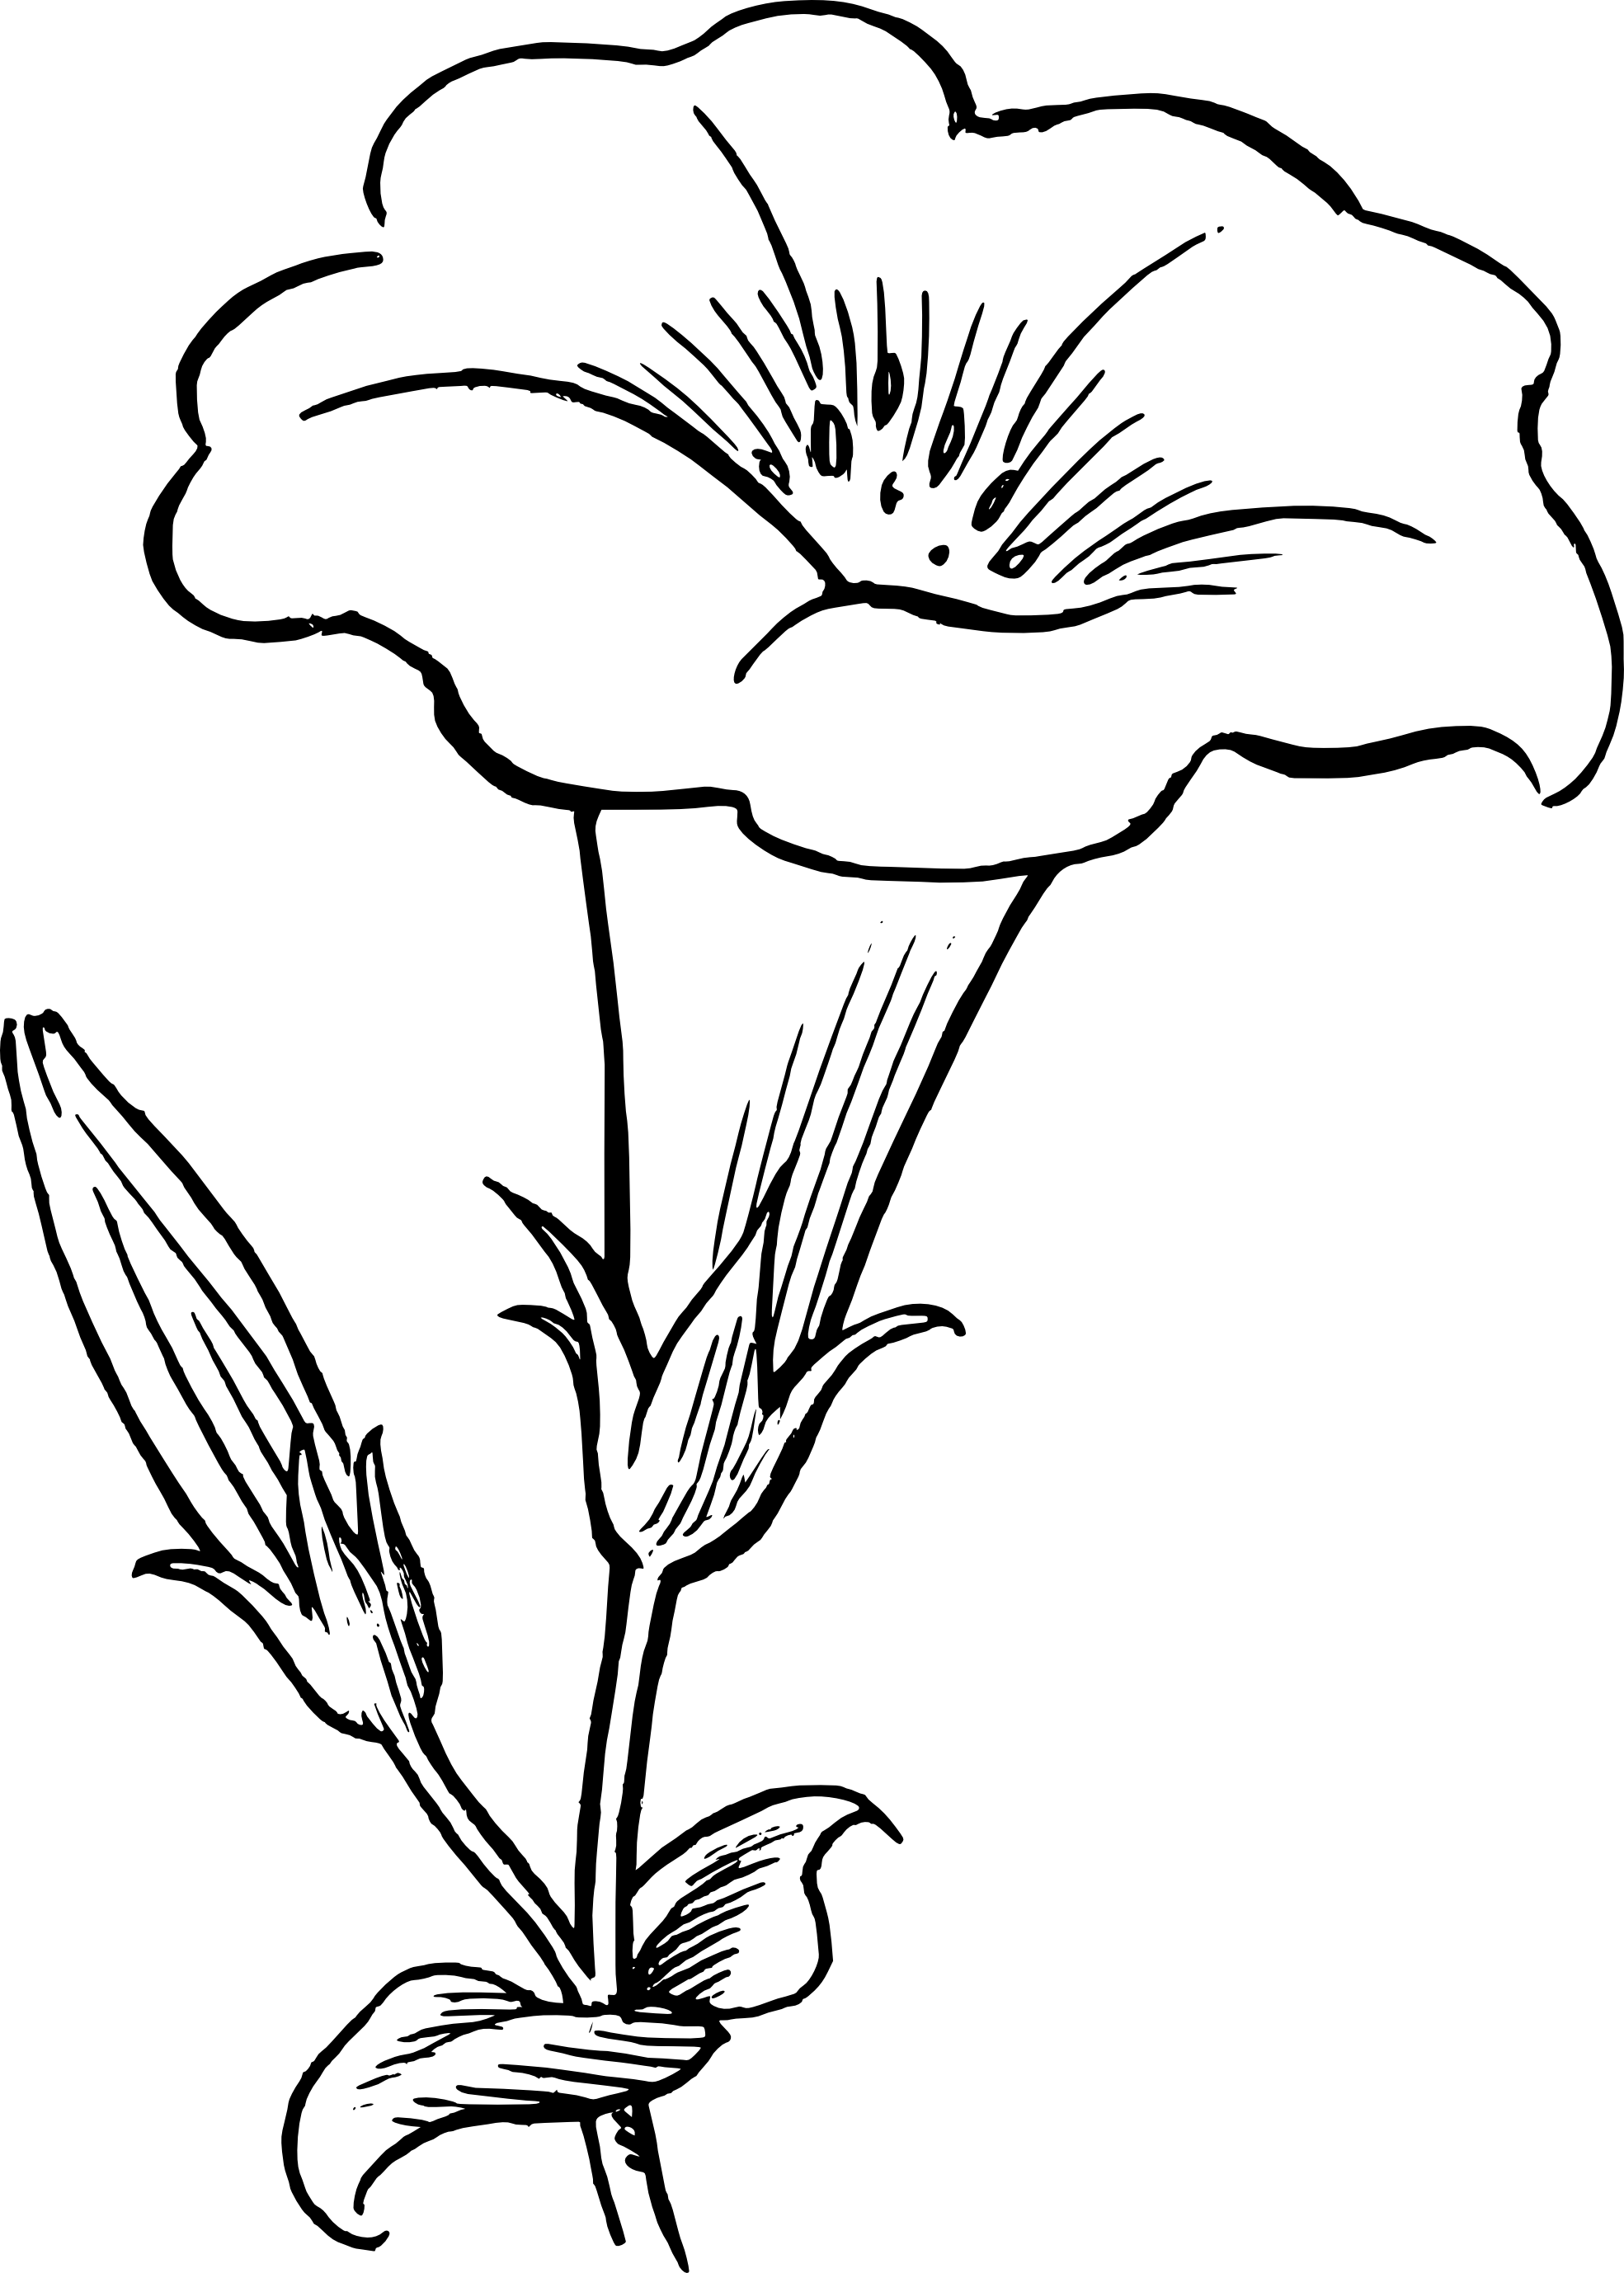 Flower Plant Line Drawing : Pictures of flower drawings cliparts